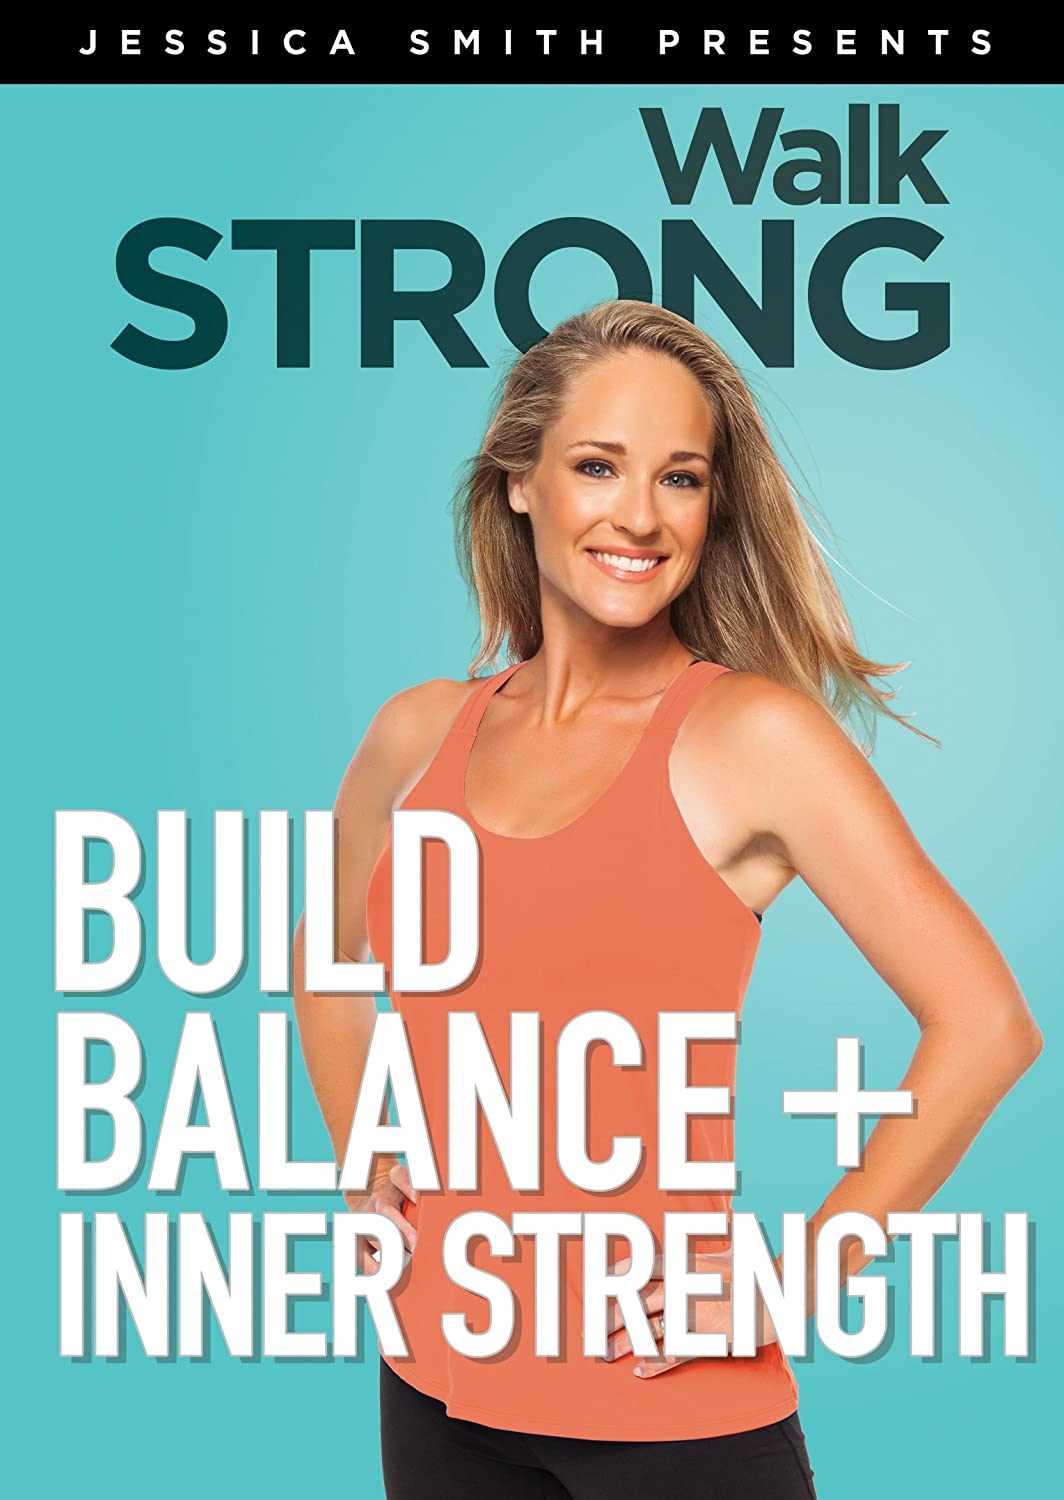 Build Balance and Ranking TOP5 Inner Strength 3 Impact Import Work Core Low Cardio